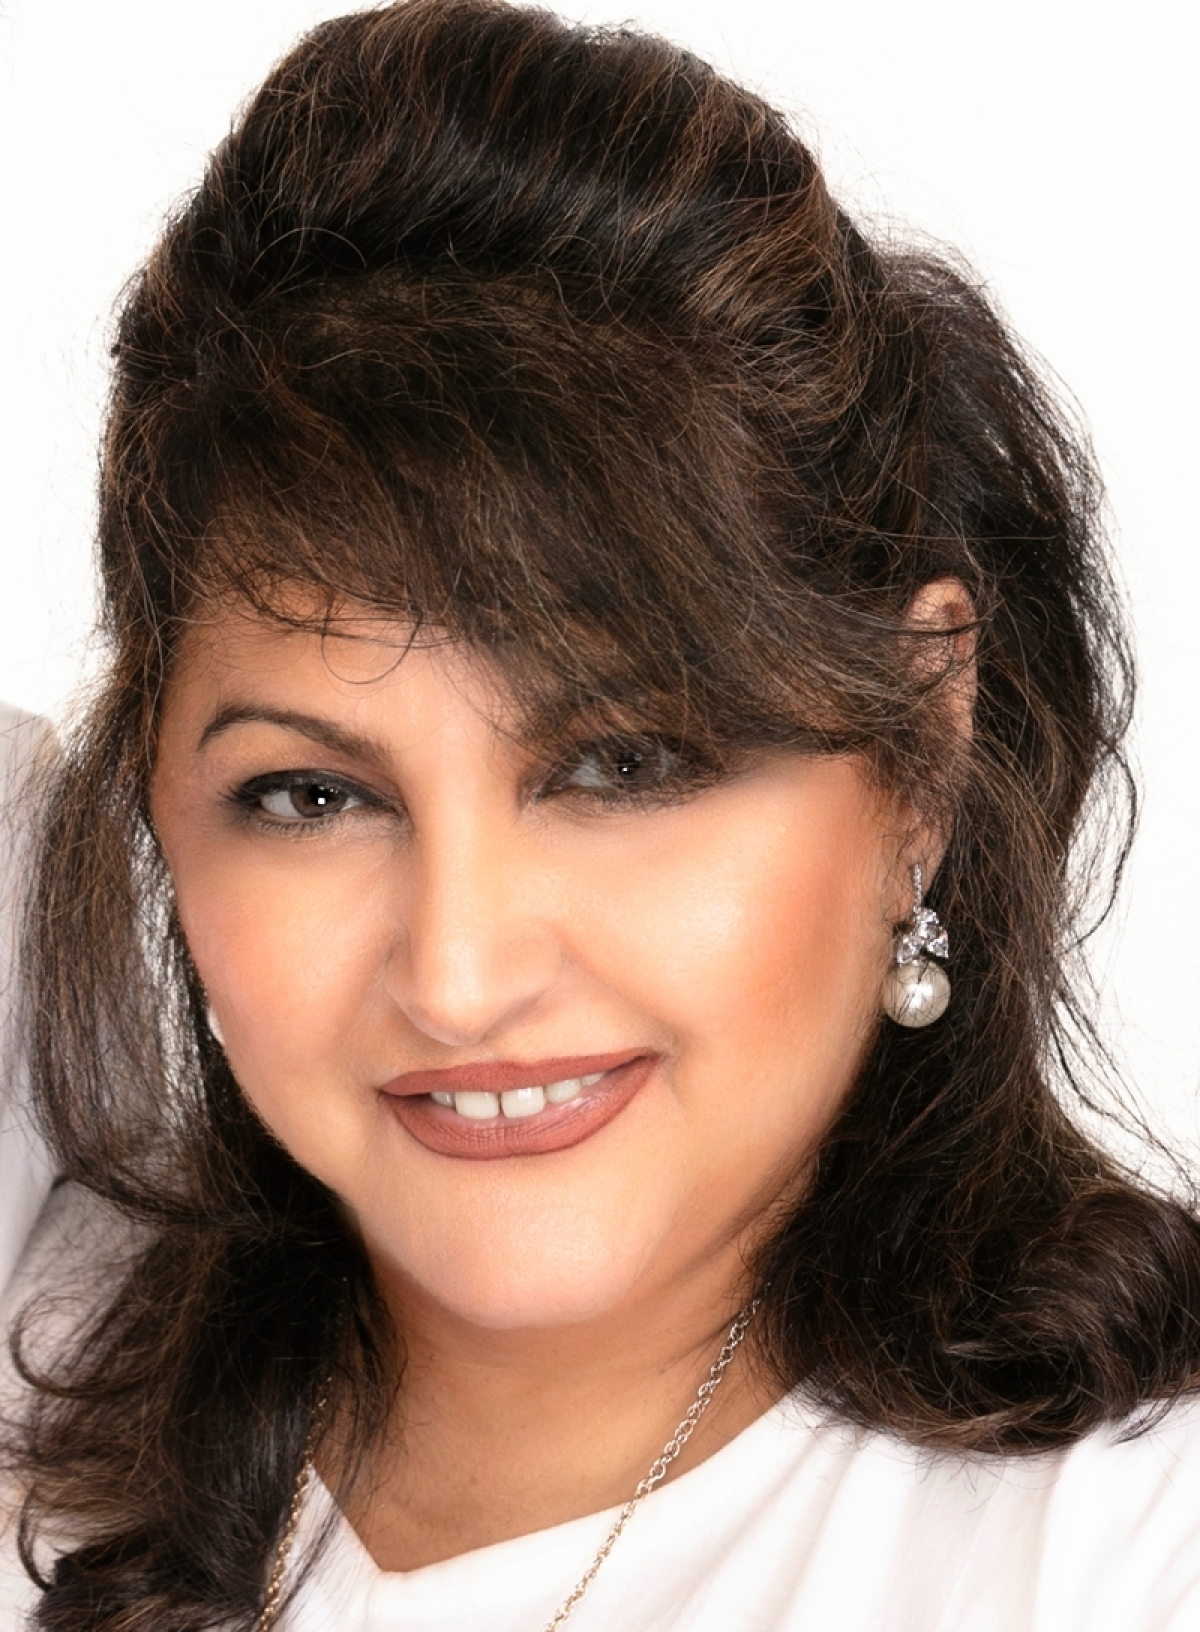 Work-life balance: Never shy away from taking a break, says Raell Padamsee